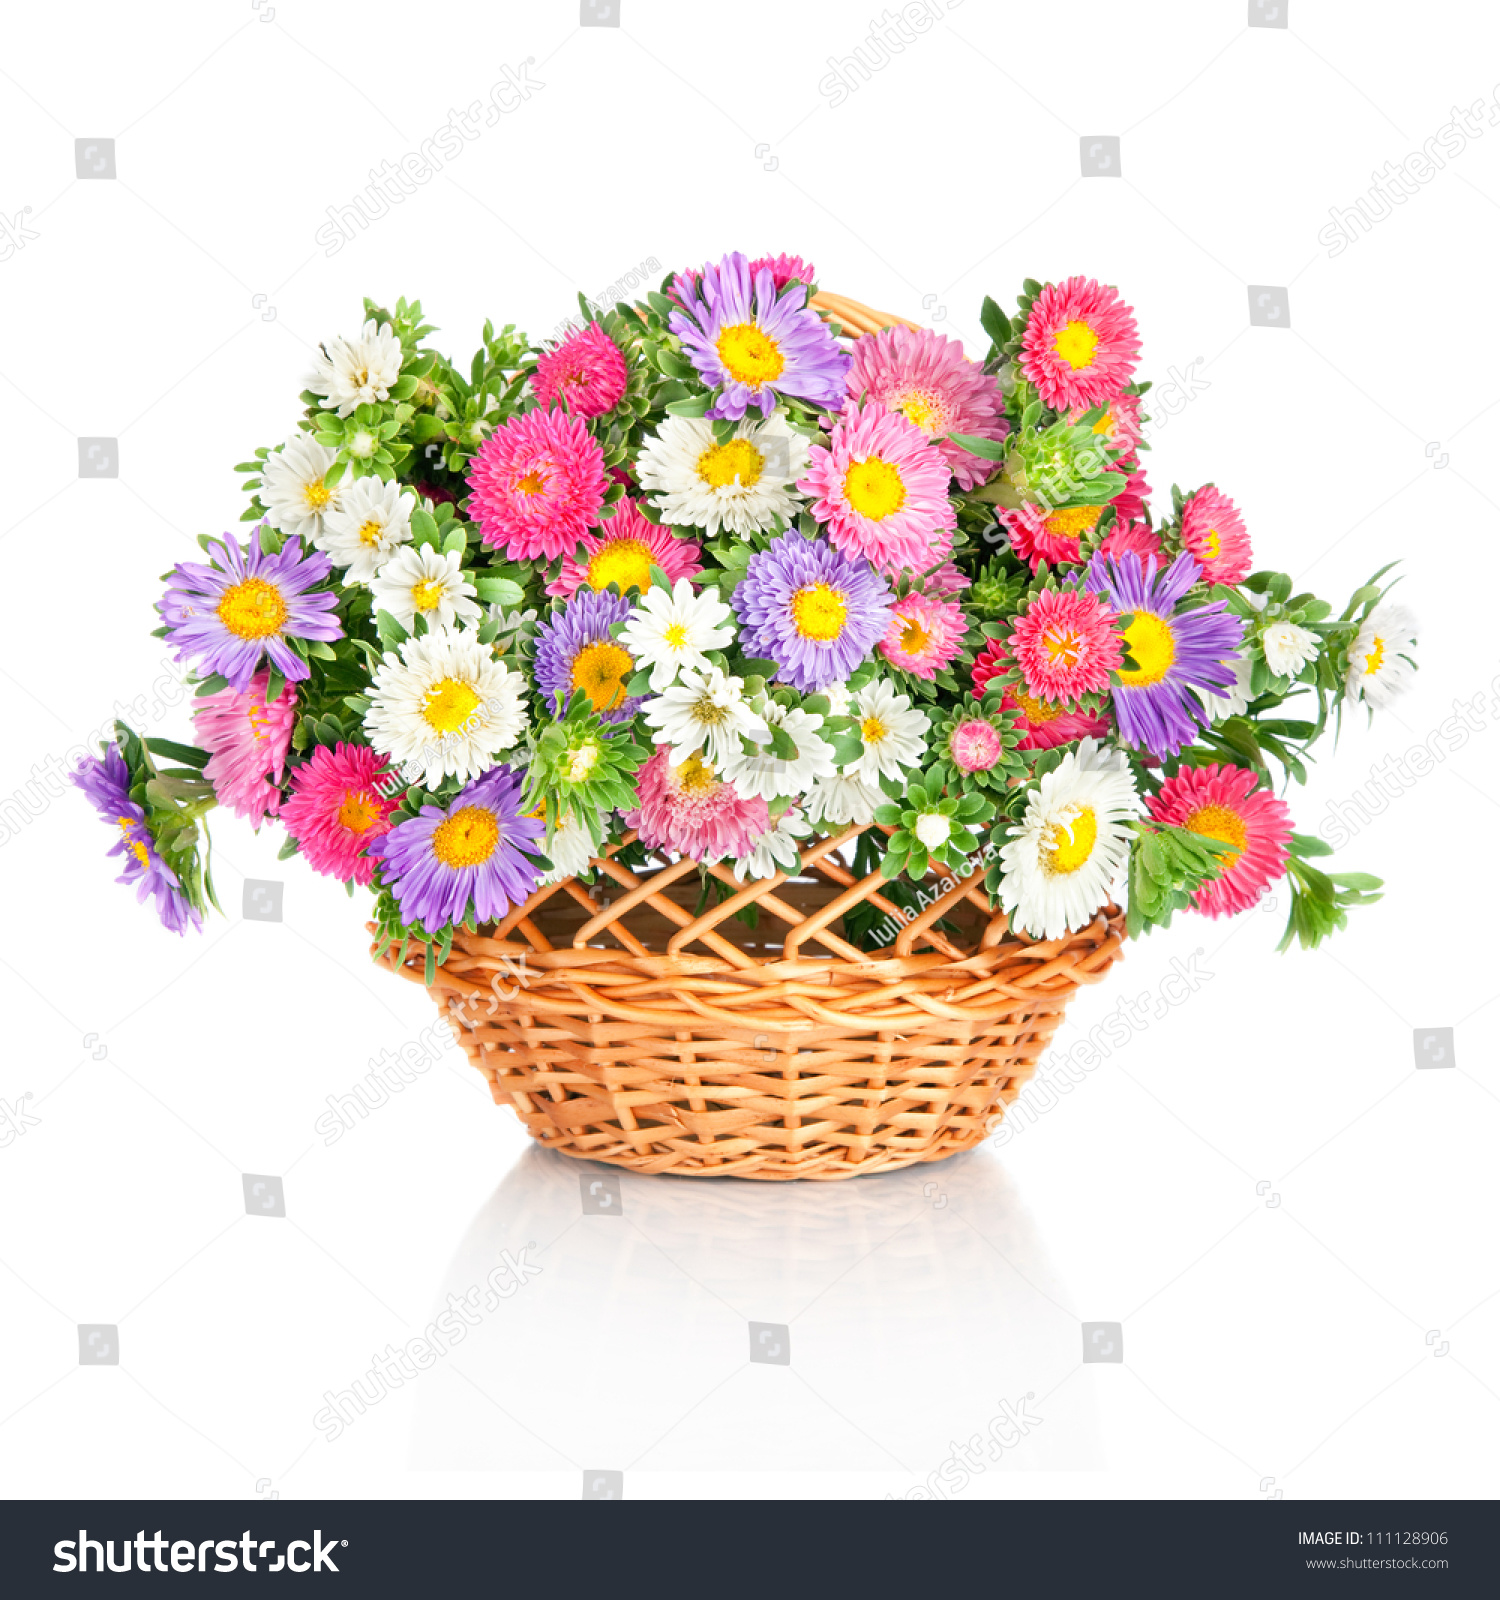 Beautiful flower basket made by such stock photo royalty free beautiful flower basket made by such as wild chrysanthemum and aster isolated on white izmirmasajfo